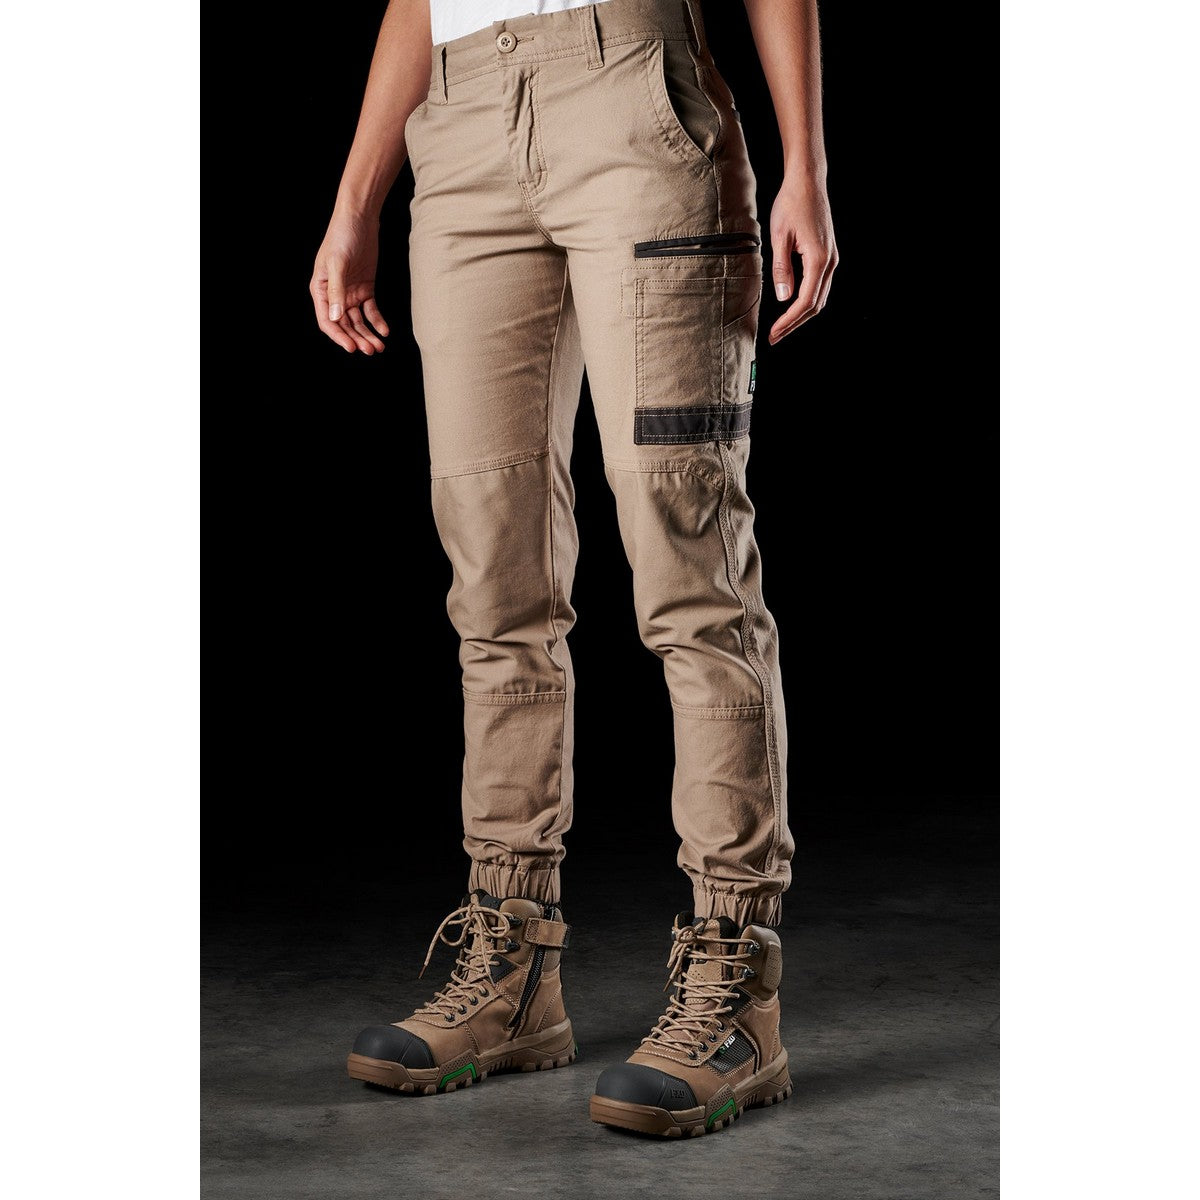 Image of FXD WP-4W Cuffed Womens Pants